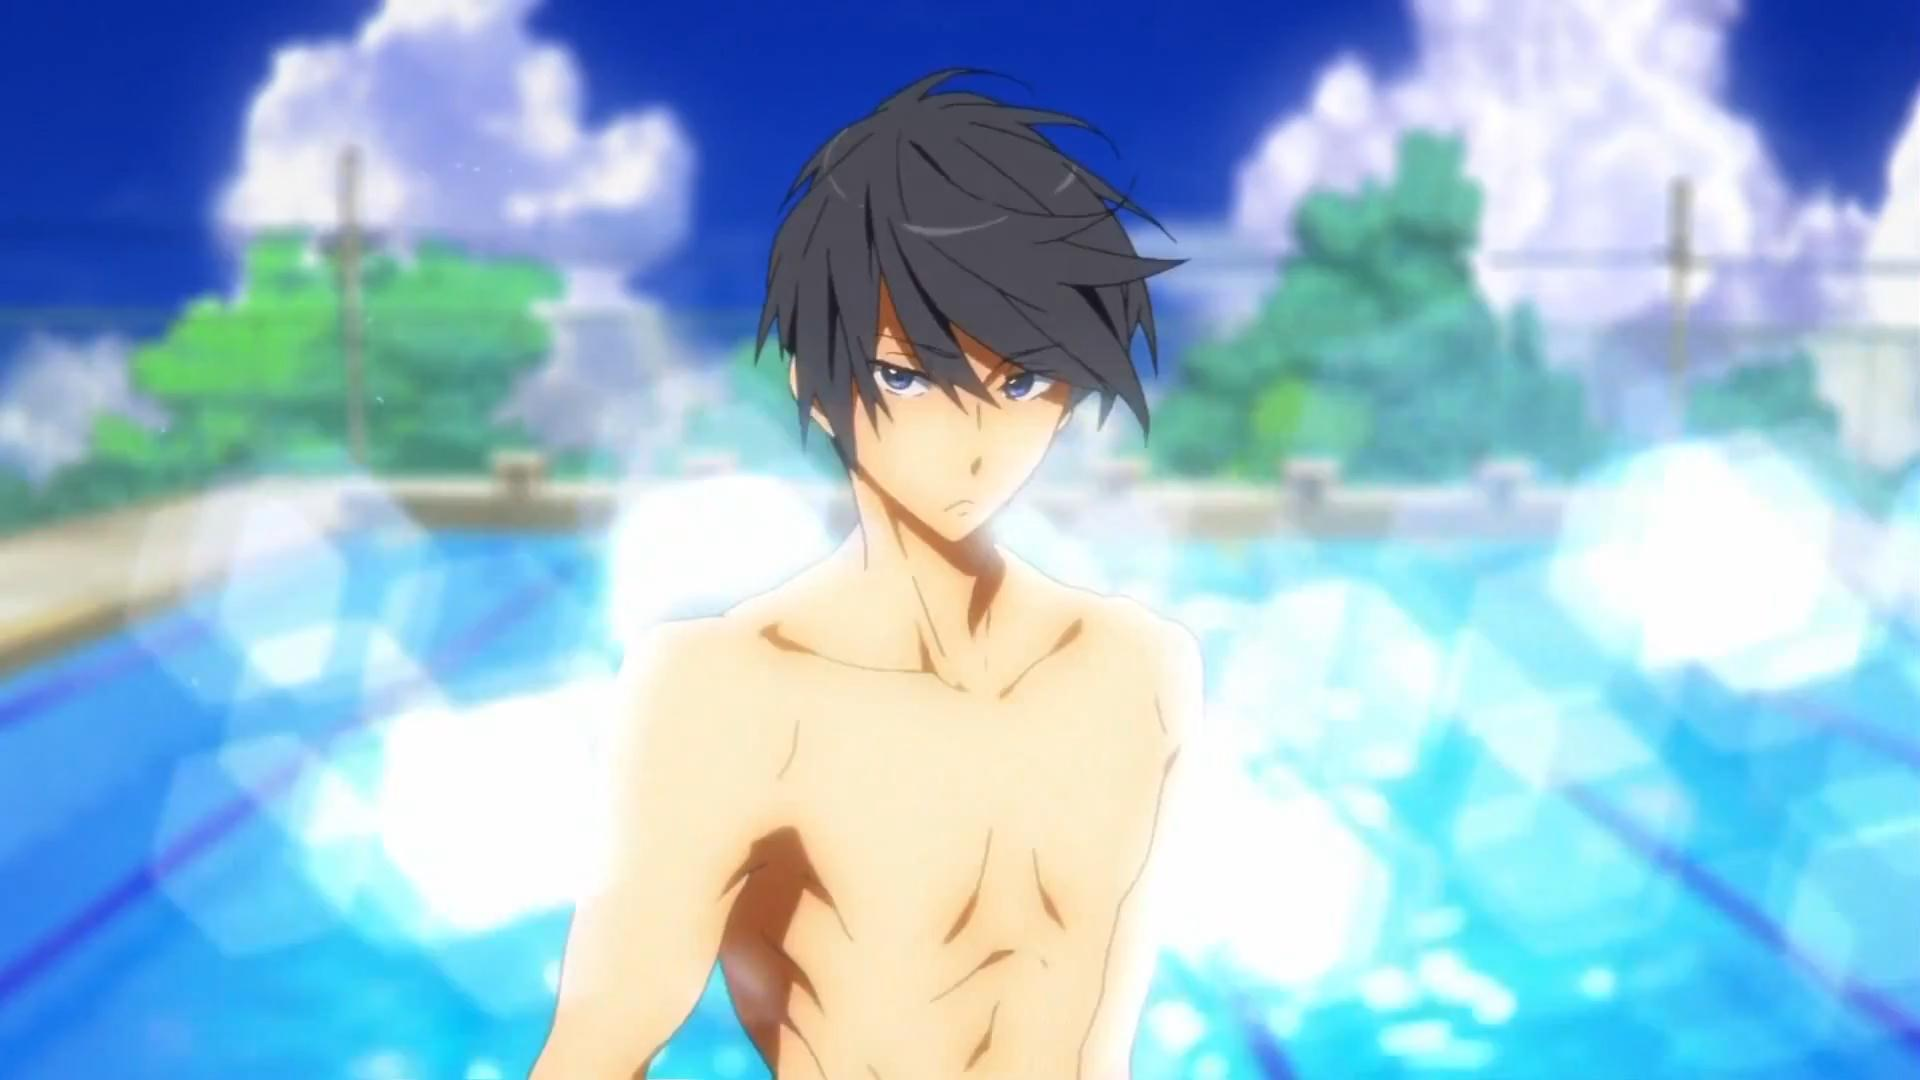 Kyoani Teases Fangirls Swimming Anime Adumbrate Resilient Love